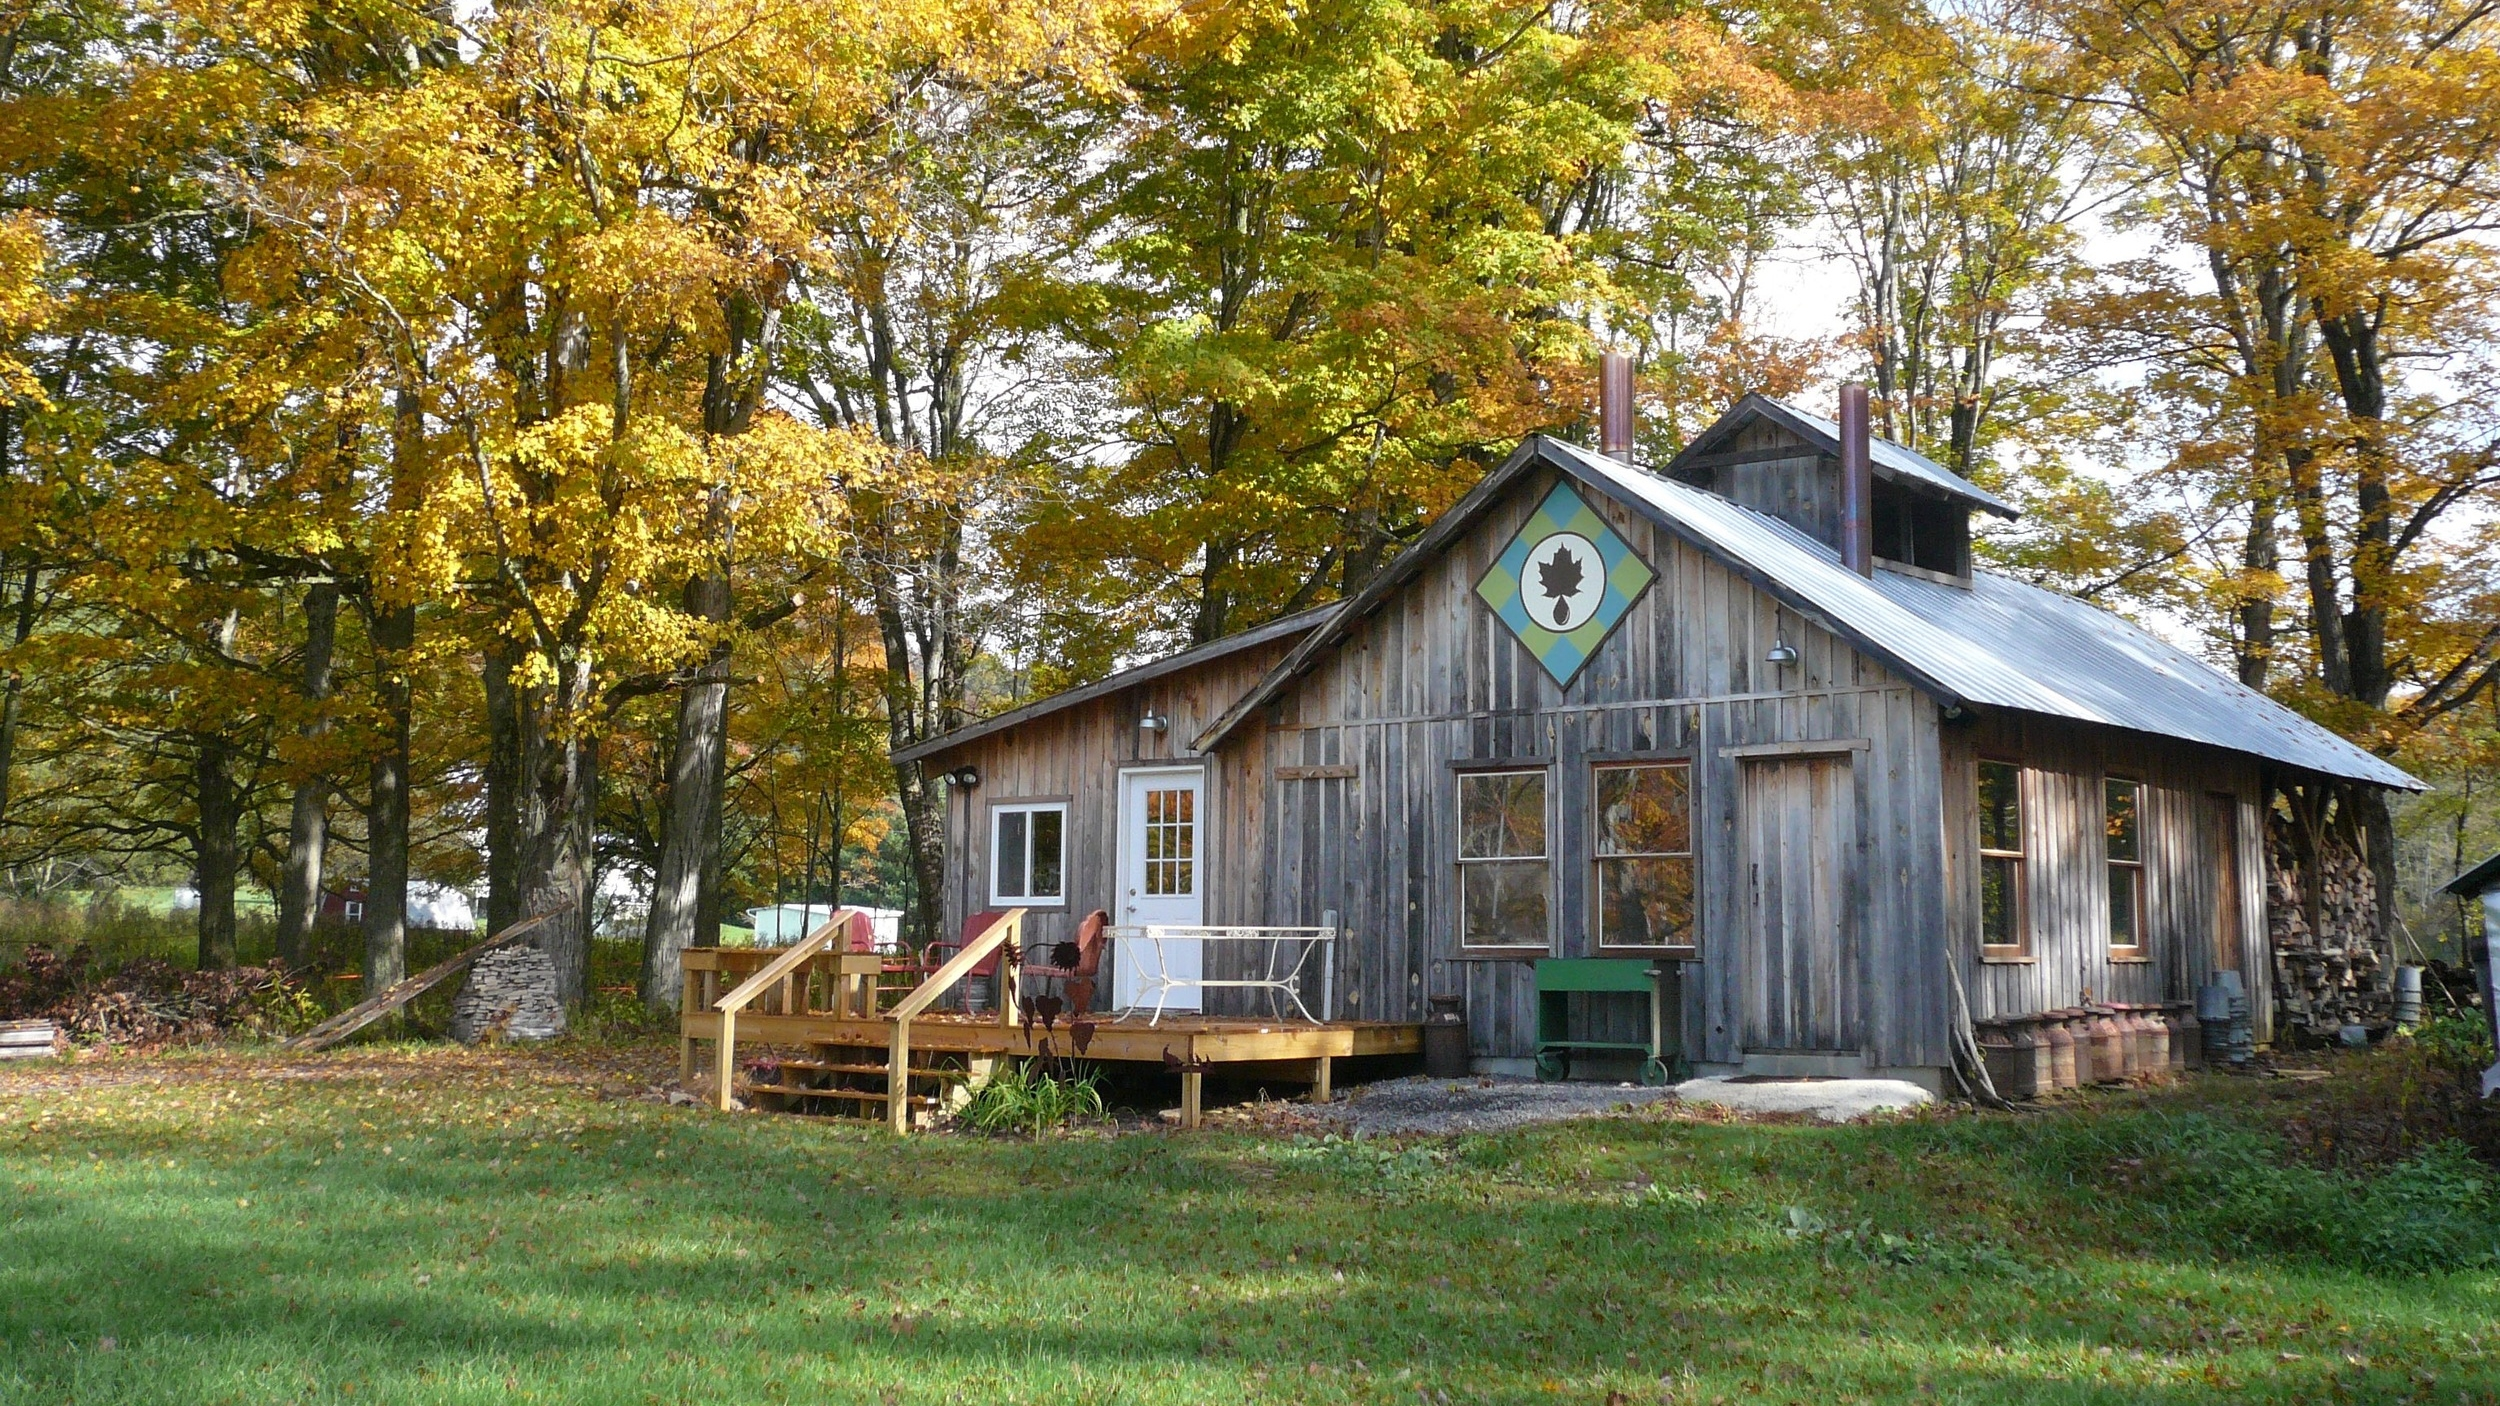 The sugar house is where all the goodness begins. We love sharing our passion for maple syrup!